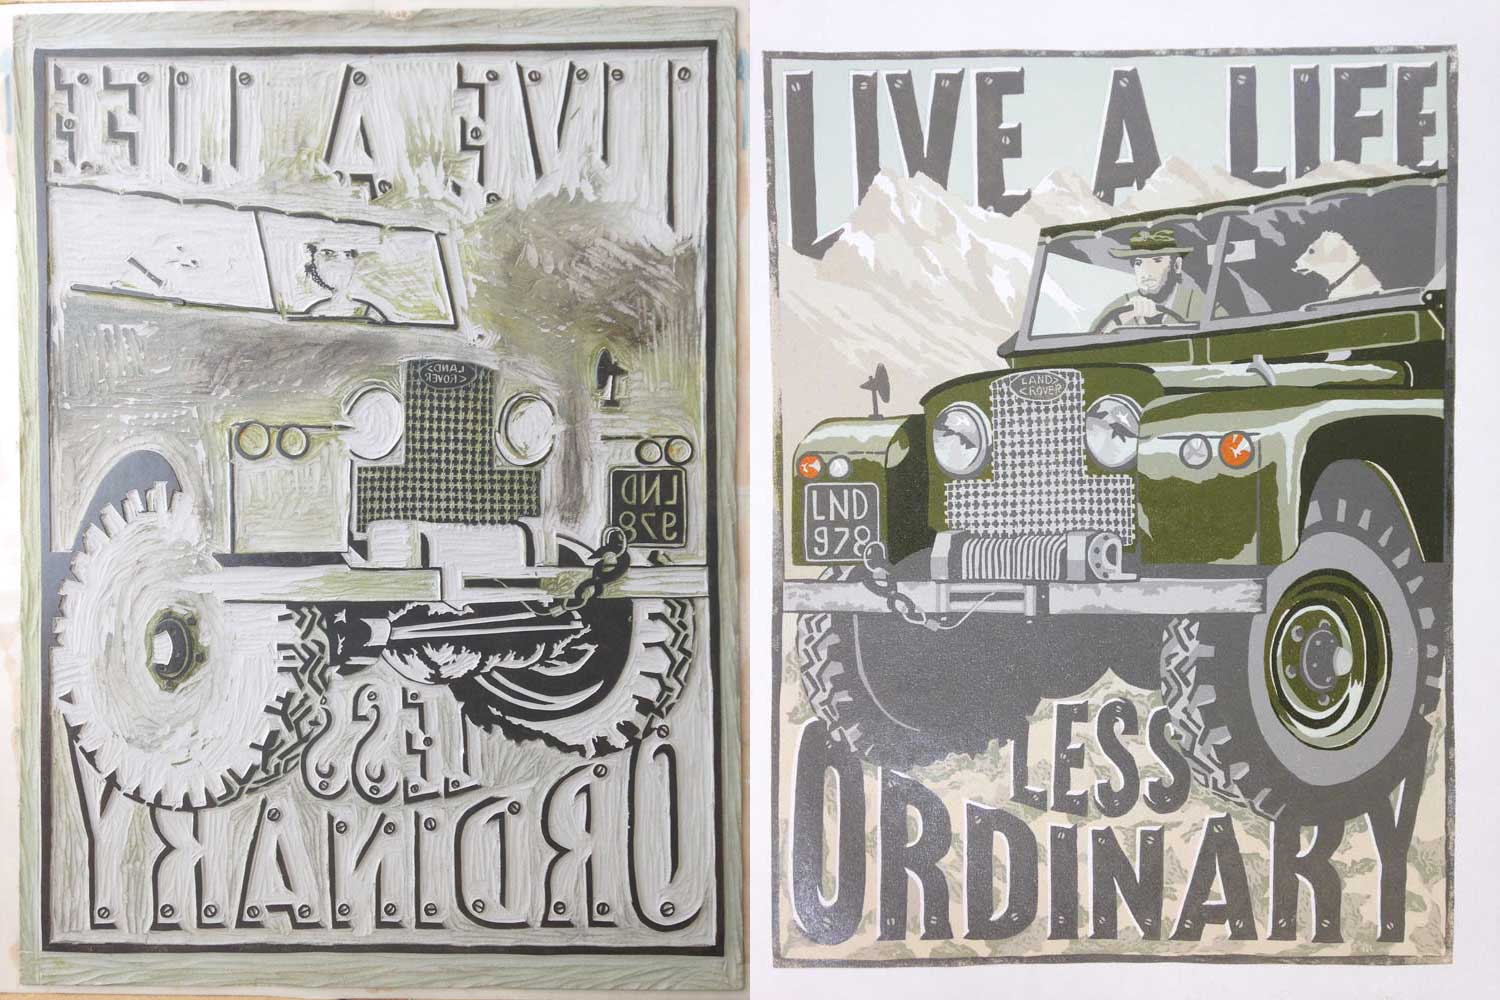 land rover printmaking